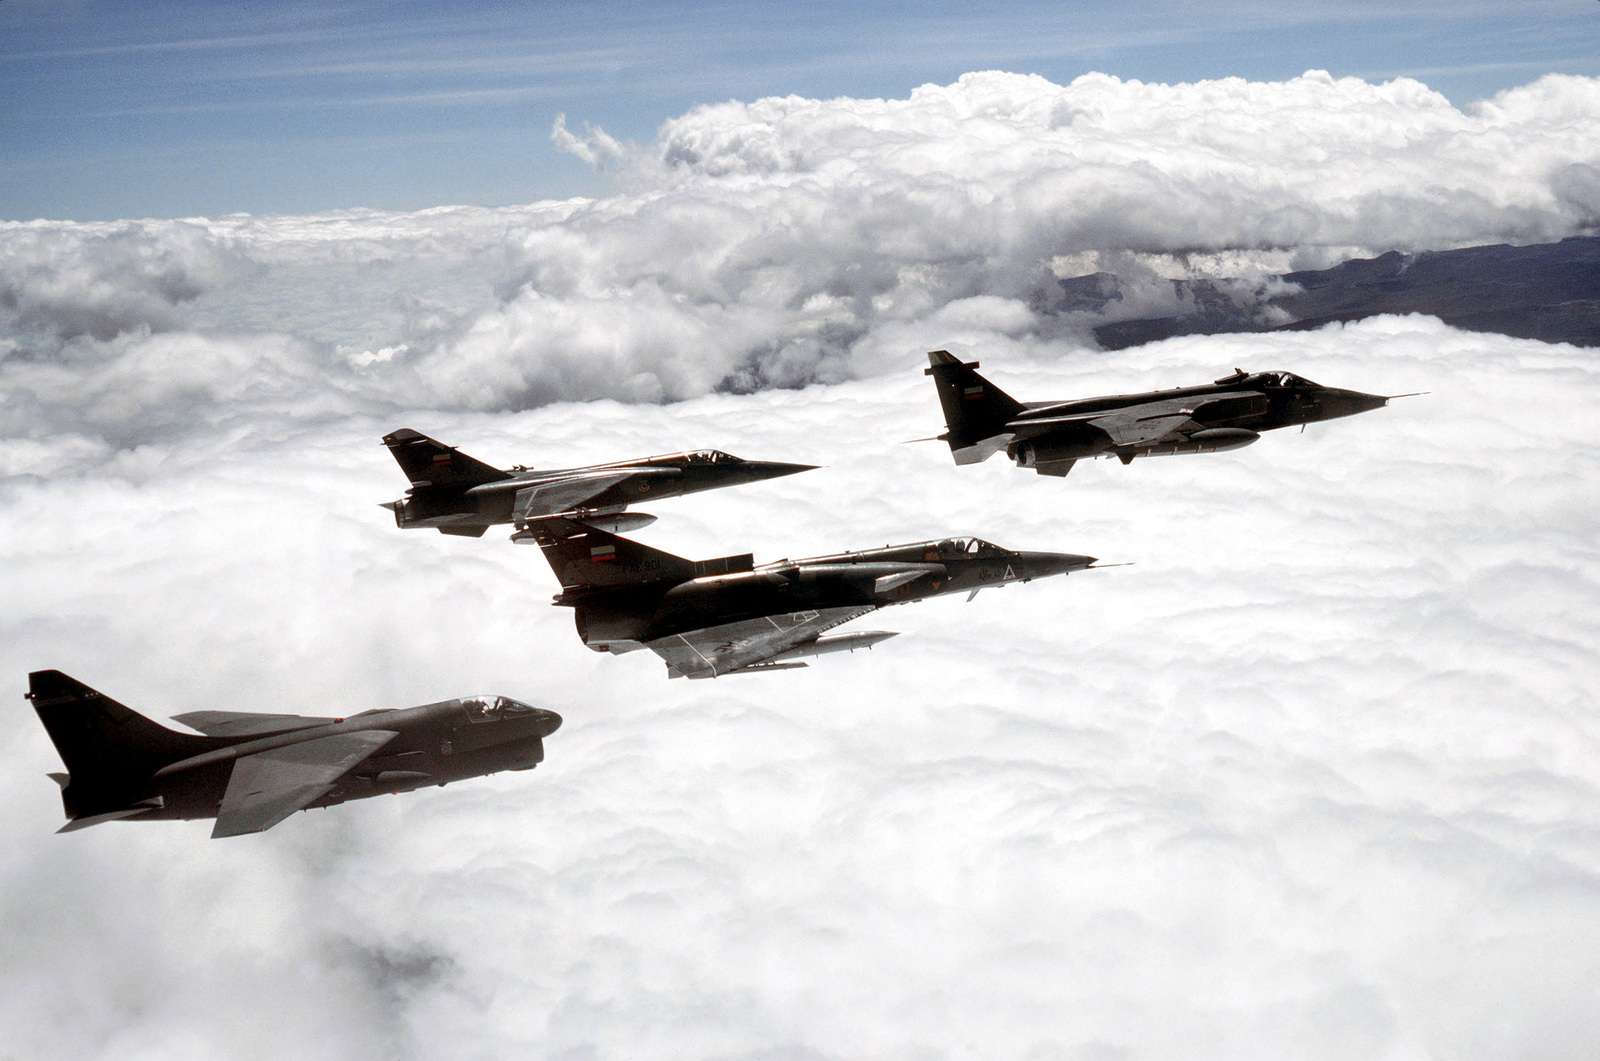 An air-to-air right side view of a U.S. Air Force A-7D Corsair II aircraft, left, in formation with three Ecuadorian aircraft during the joint U.S. and Ecuadorian Exercise Blue Horizon. The aircraft are an F-1 Mirage, left center, a Kfir, center, and a Jaguar